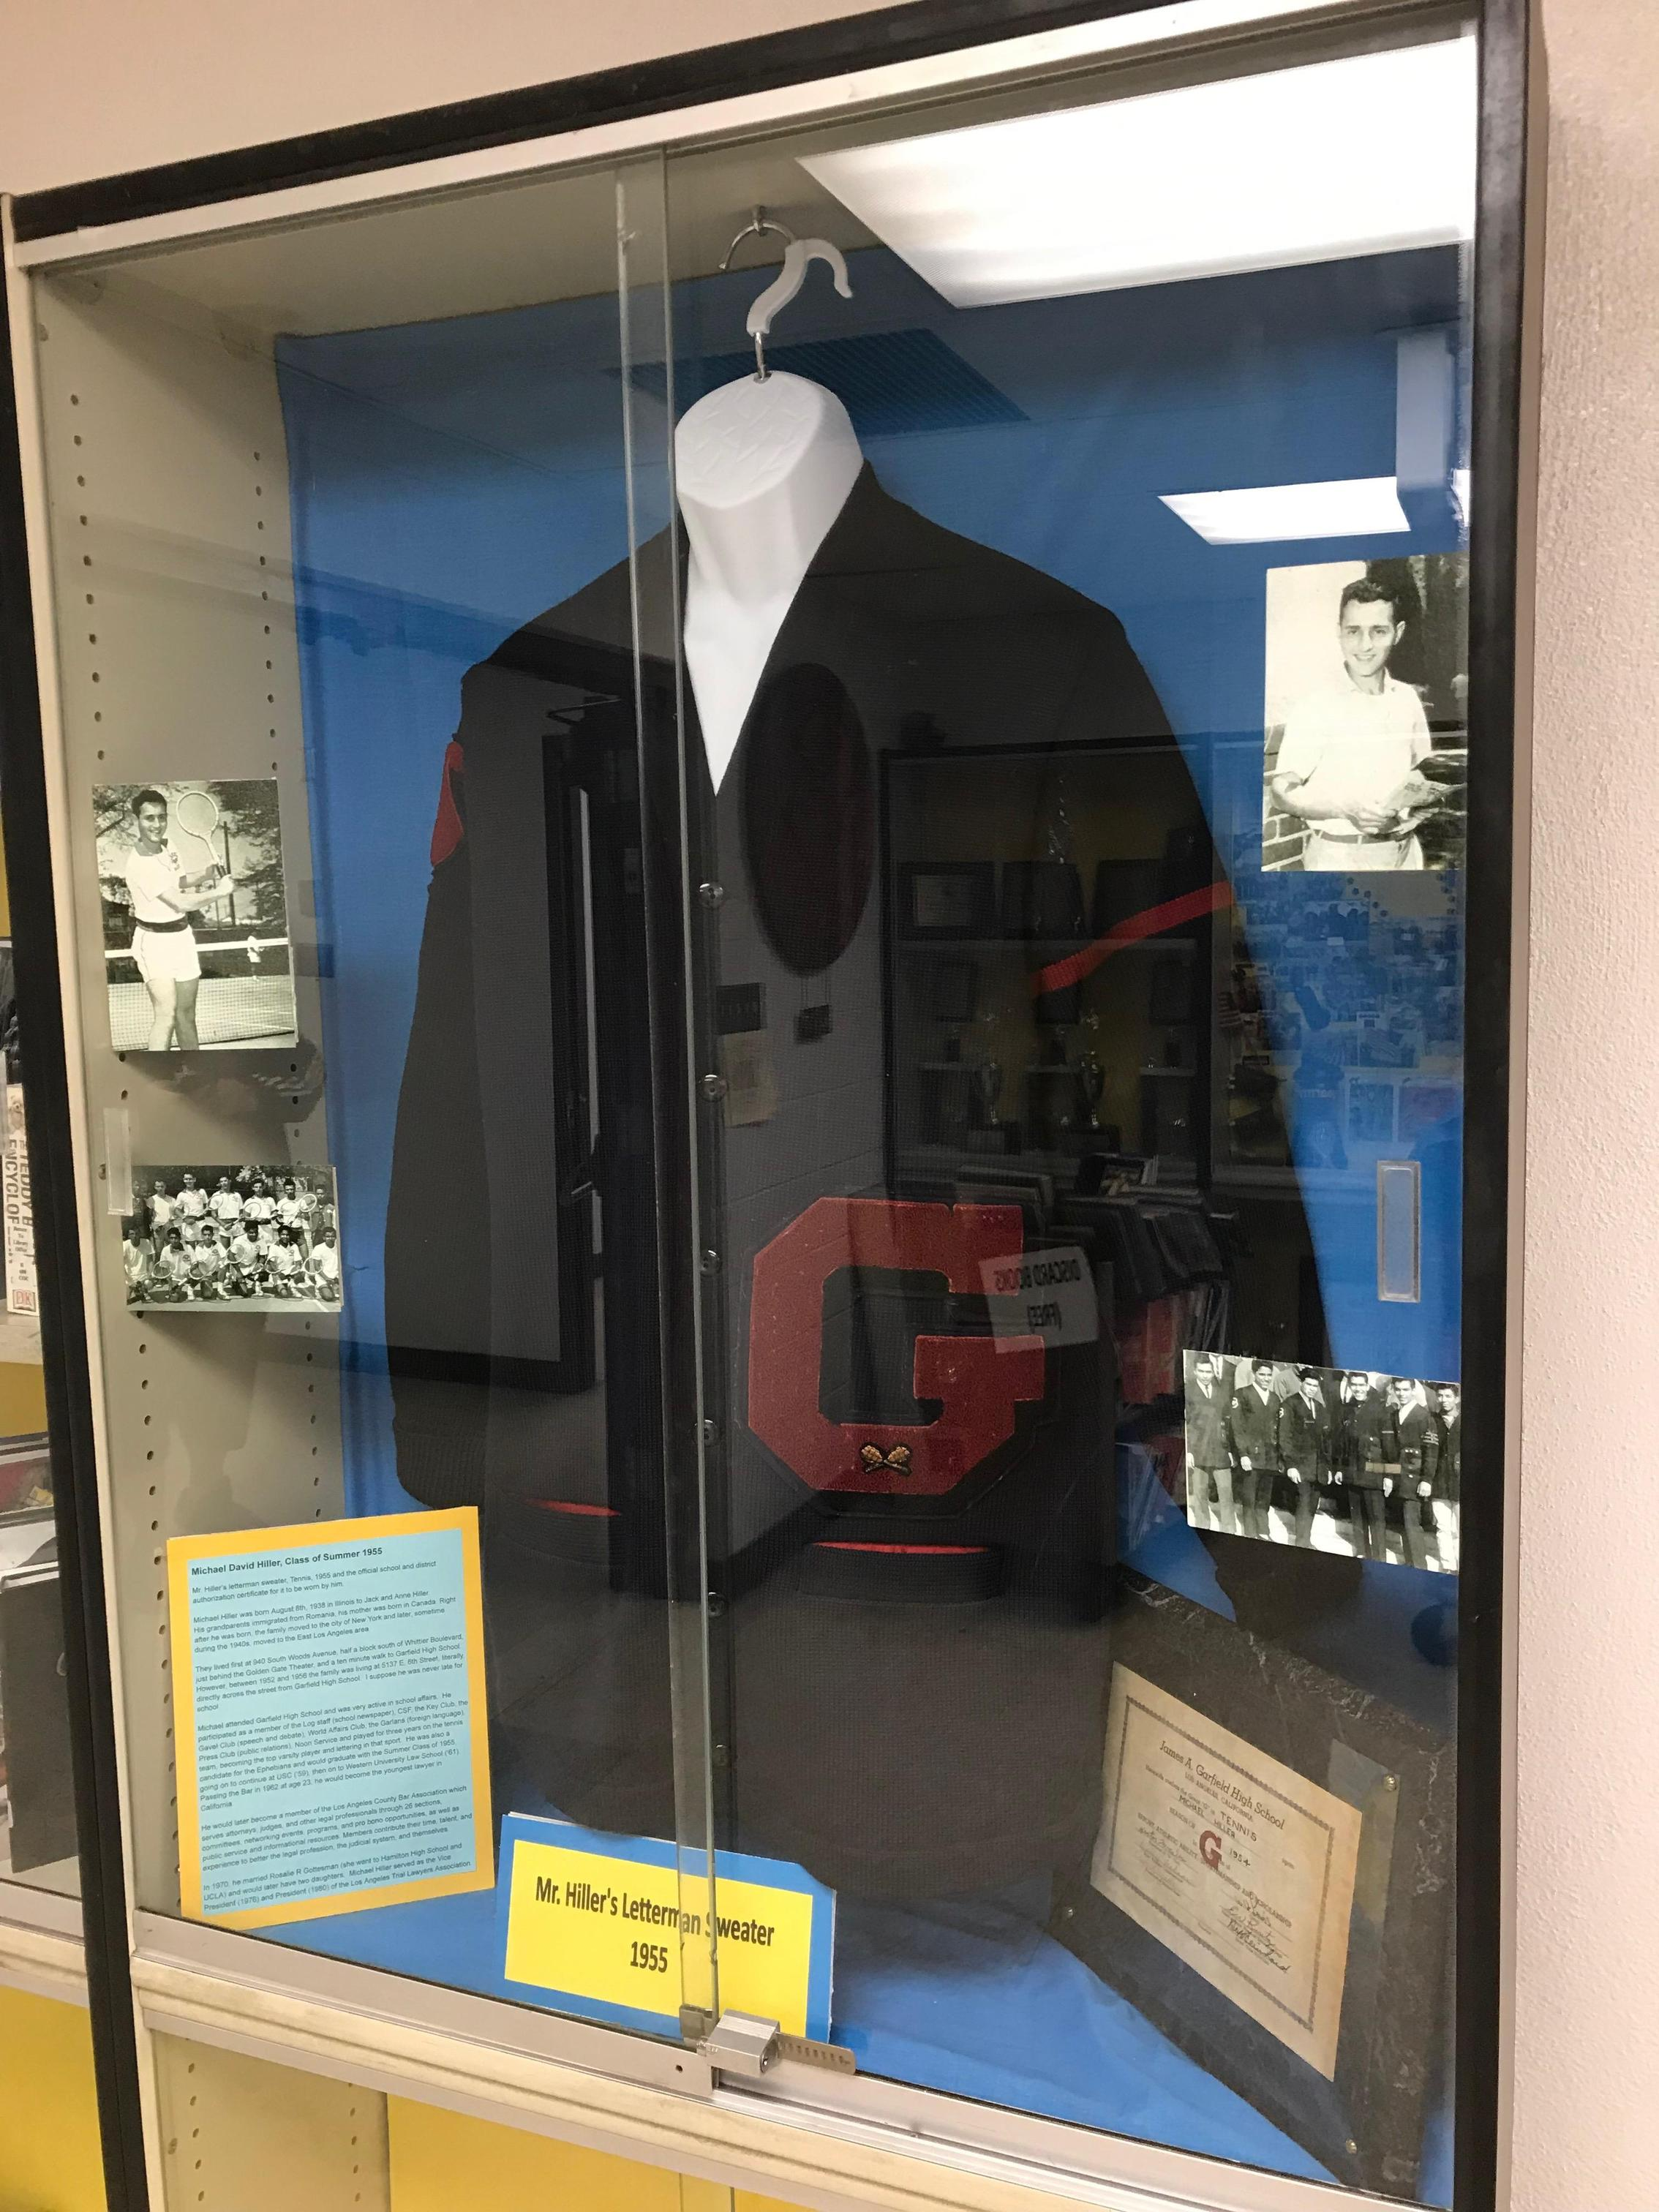 Letterman sweater on display